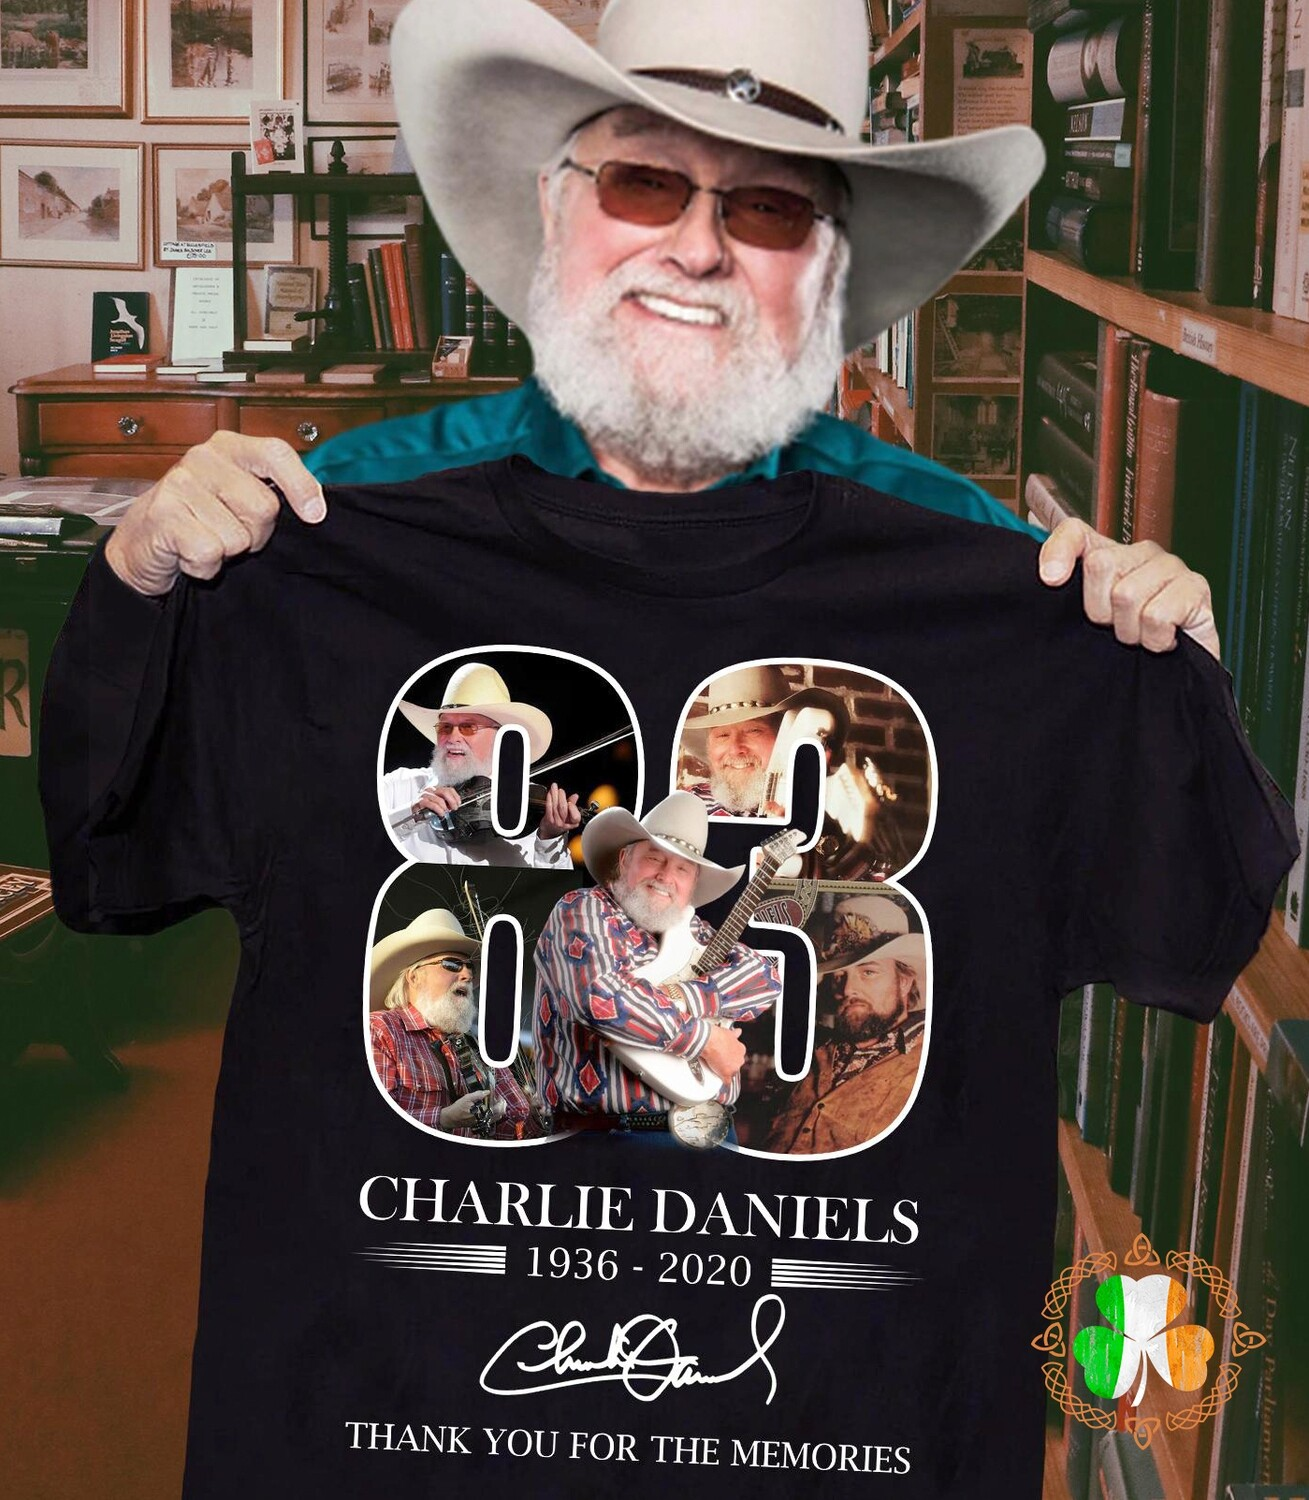 Charlie Daniels 83 years thank you for the memories signature shirt